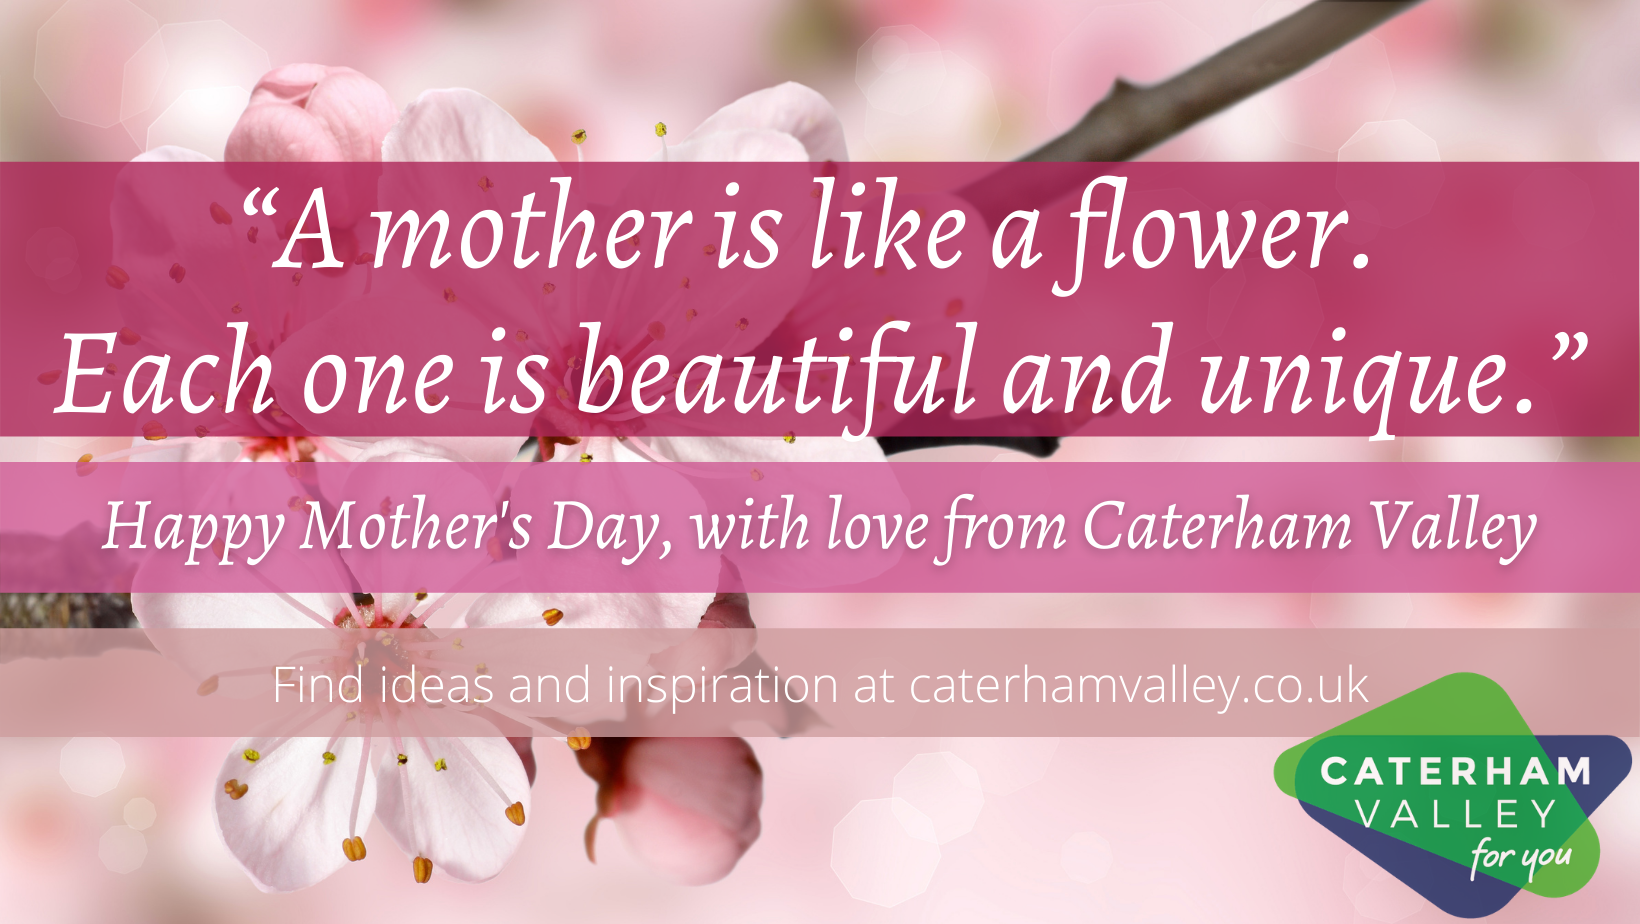 Mother's Day giveaway in Caterham Valley, Surrey